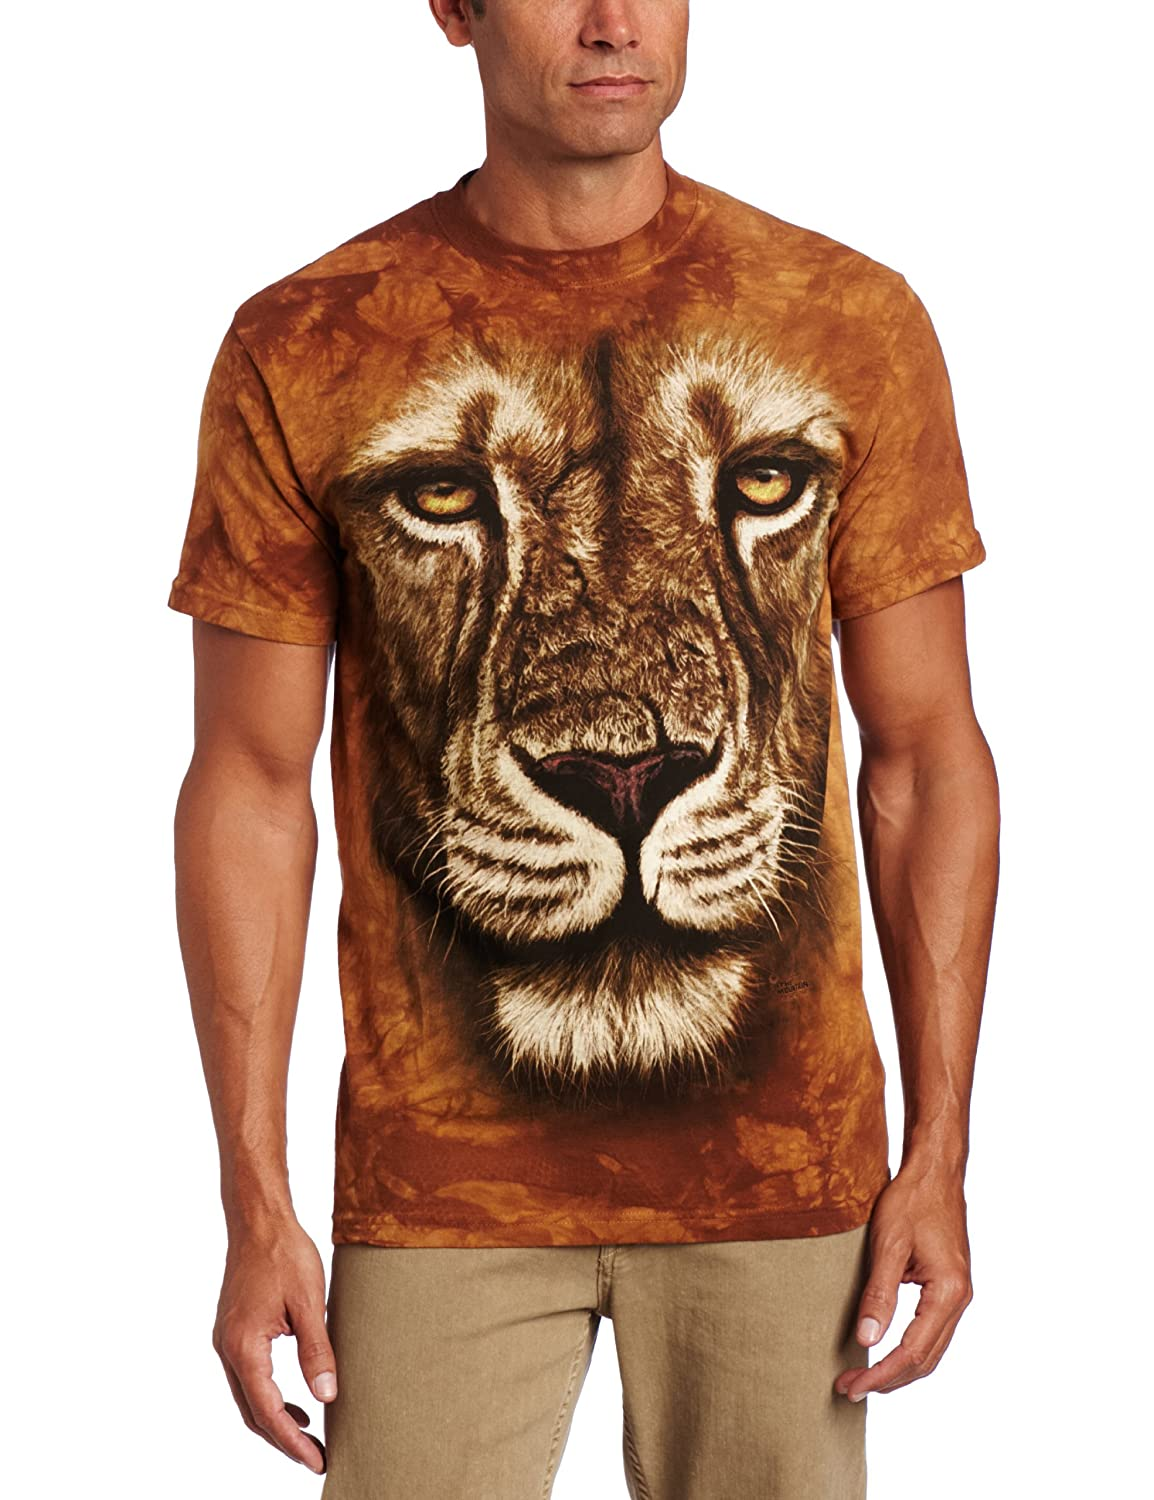 The Mountain Kids Lion Warrior T-Shirt Getting Fit MT3180-15-P